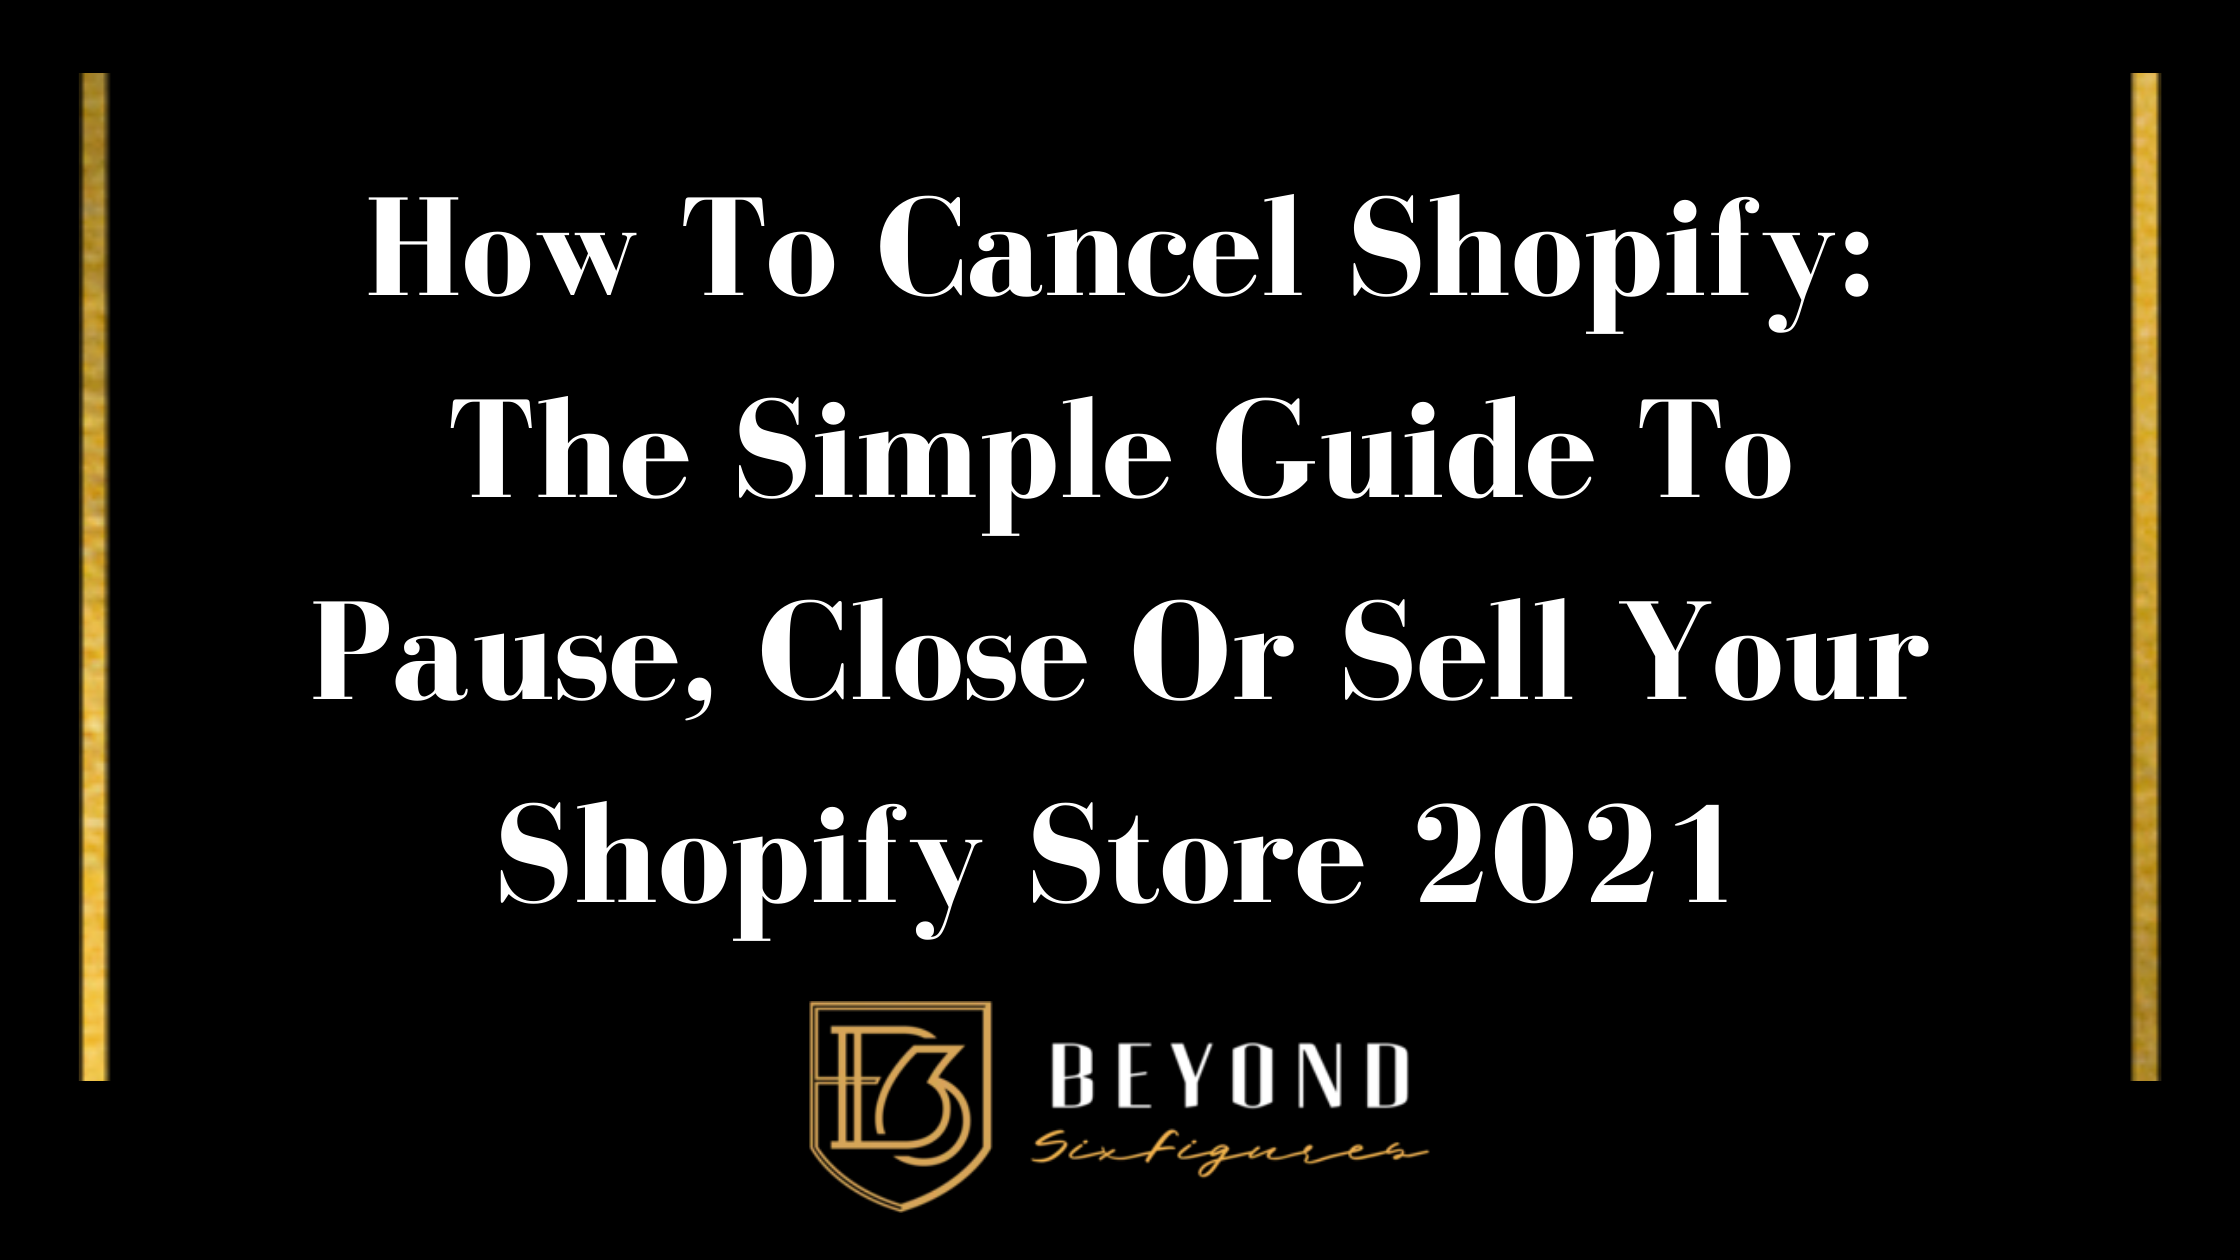 Visual of How To Cancel Shopify: The Simple Guide To Pause, Close Or Sell Your Shopify Store 2021